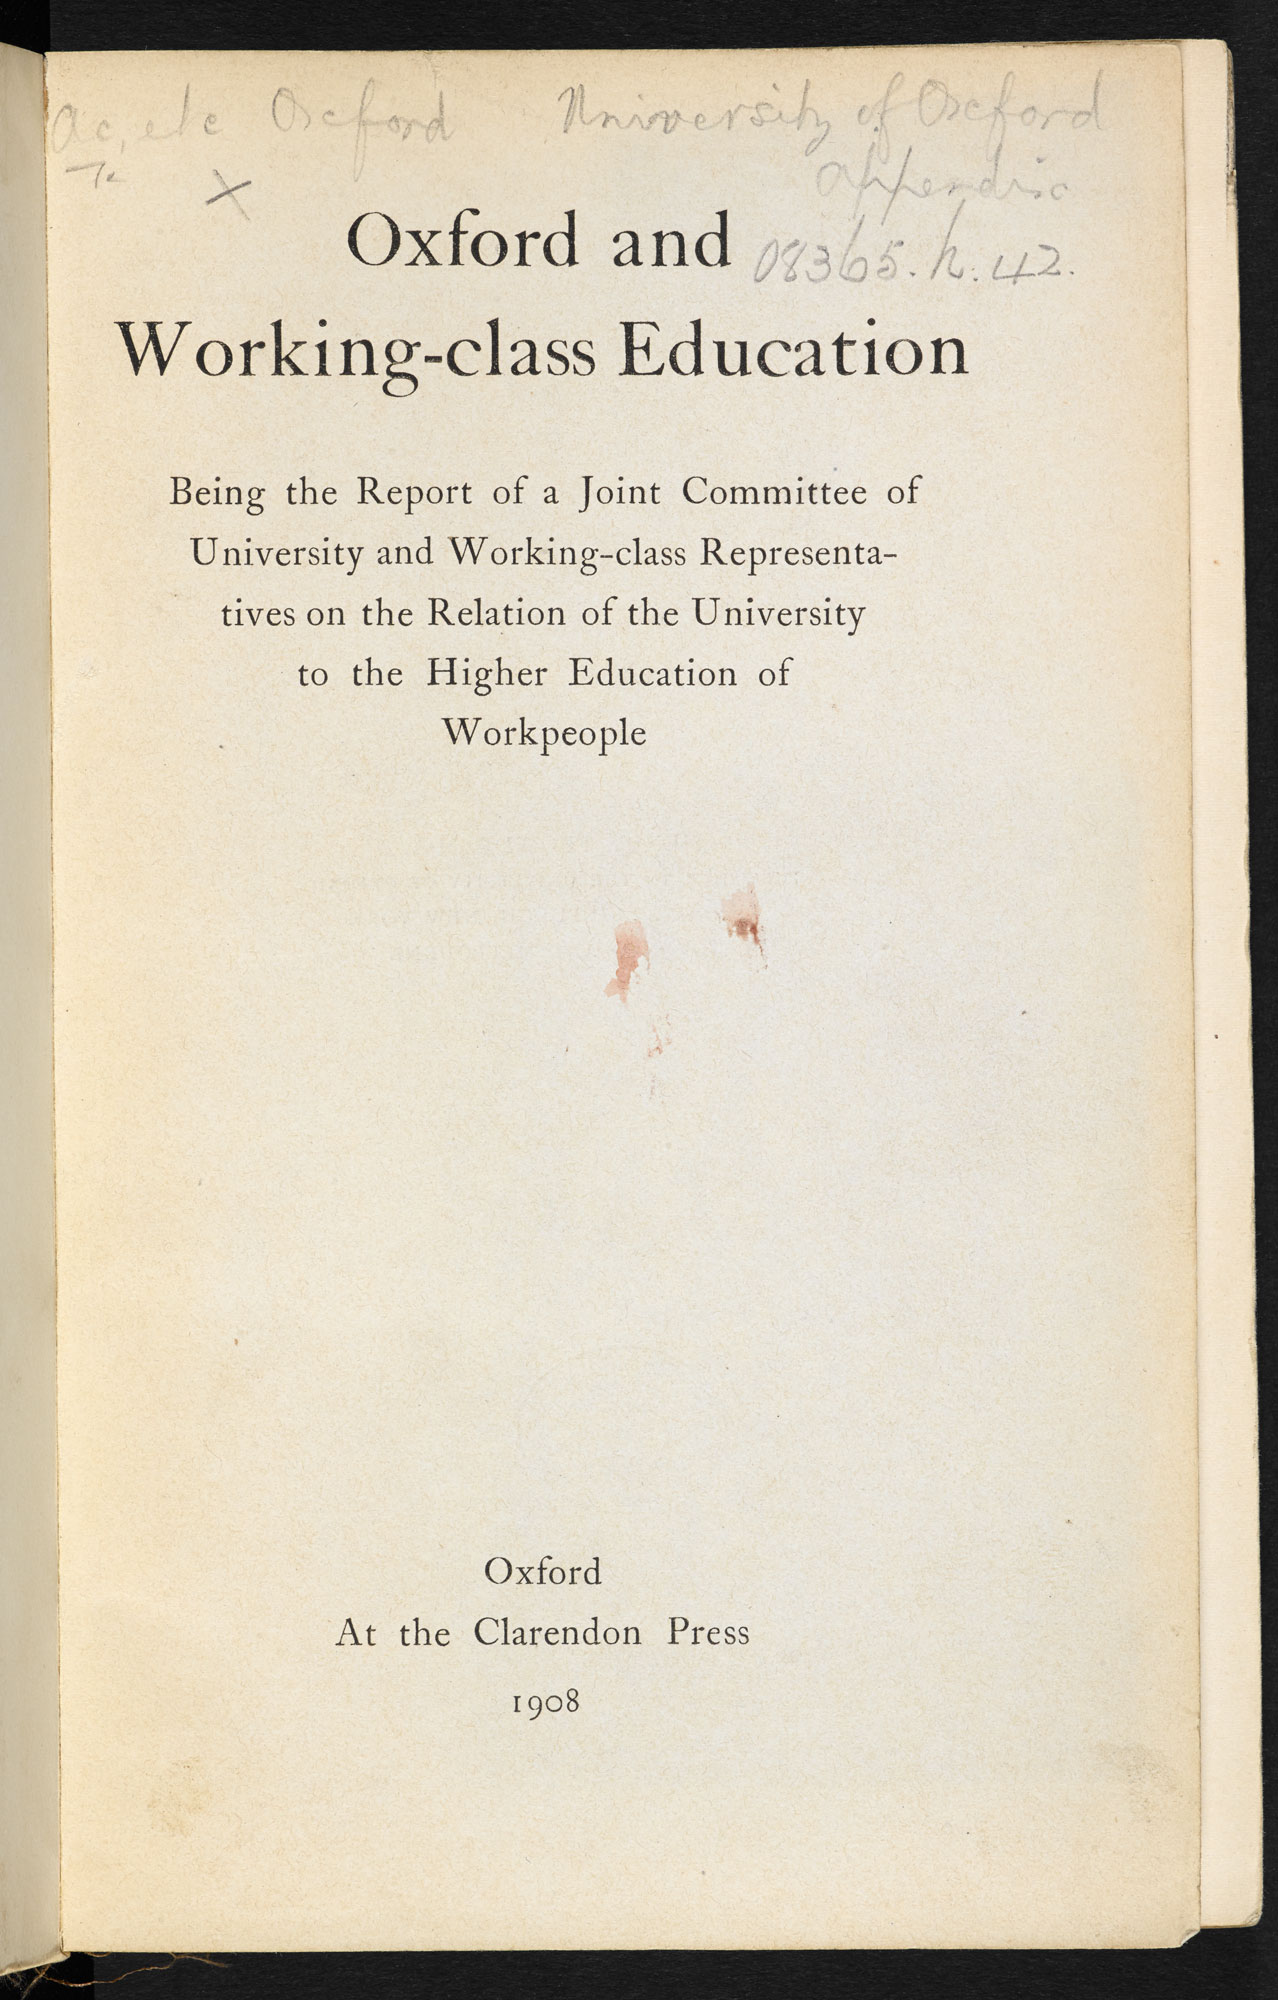 Oxford and Working-class Education, a report [page: title page]